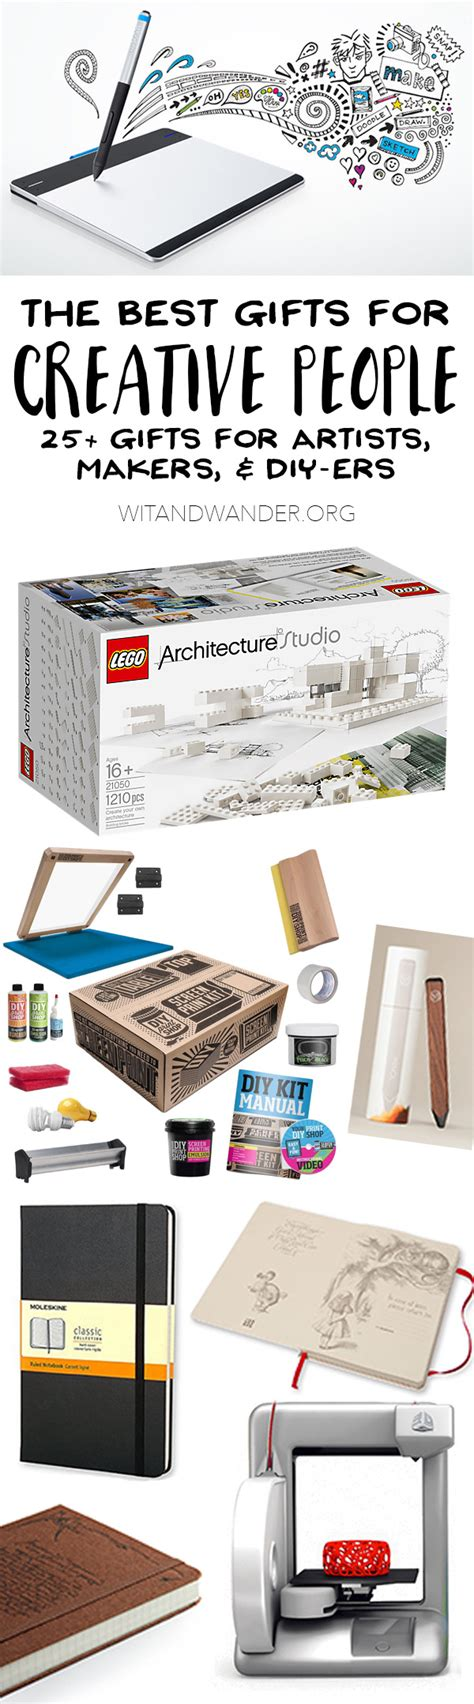 gifts for aspiring architects gifts for aspiring architects gifts for aspiring